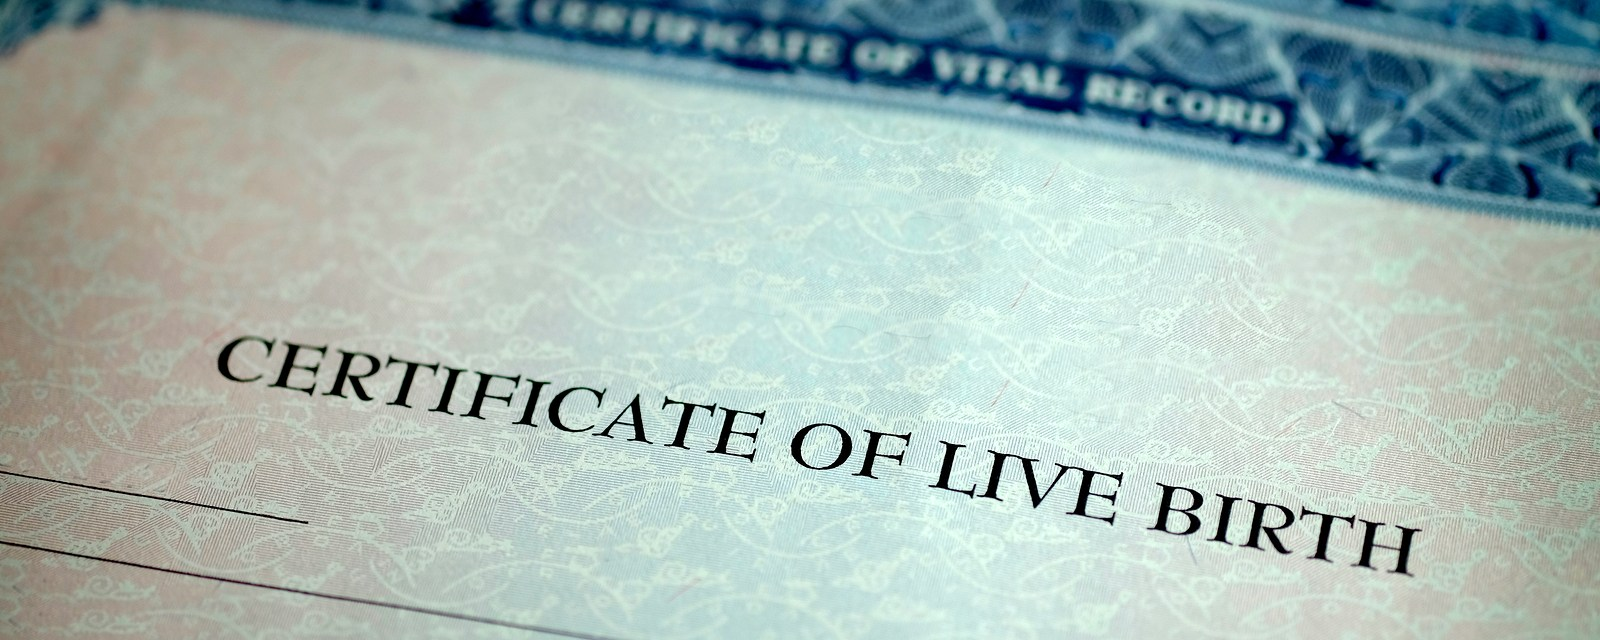 Thousands of U.S. Birth Certificates and Death Certificate Applications Revealed!